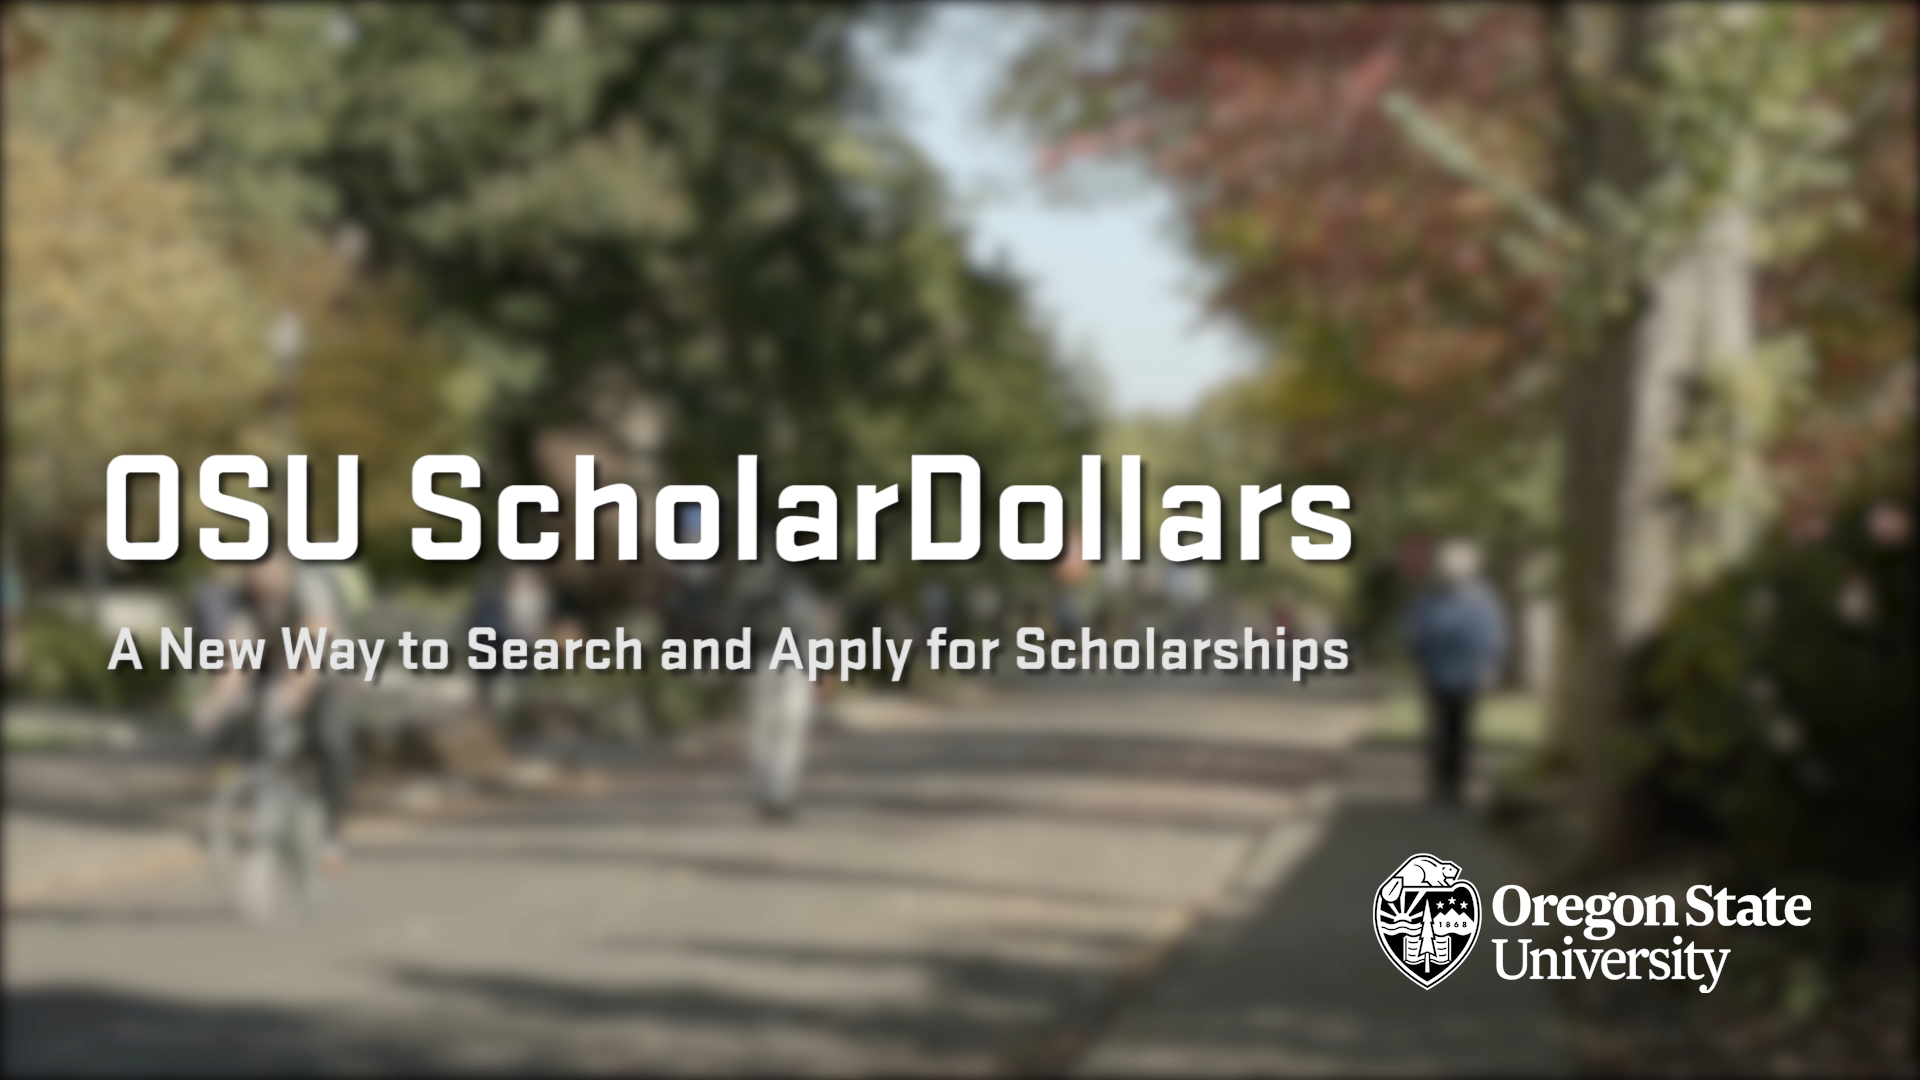 Oregon State Academic Calendar 2021-2022 OSU ScholarDollars | Scholarship Office | Oregon State University